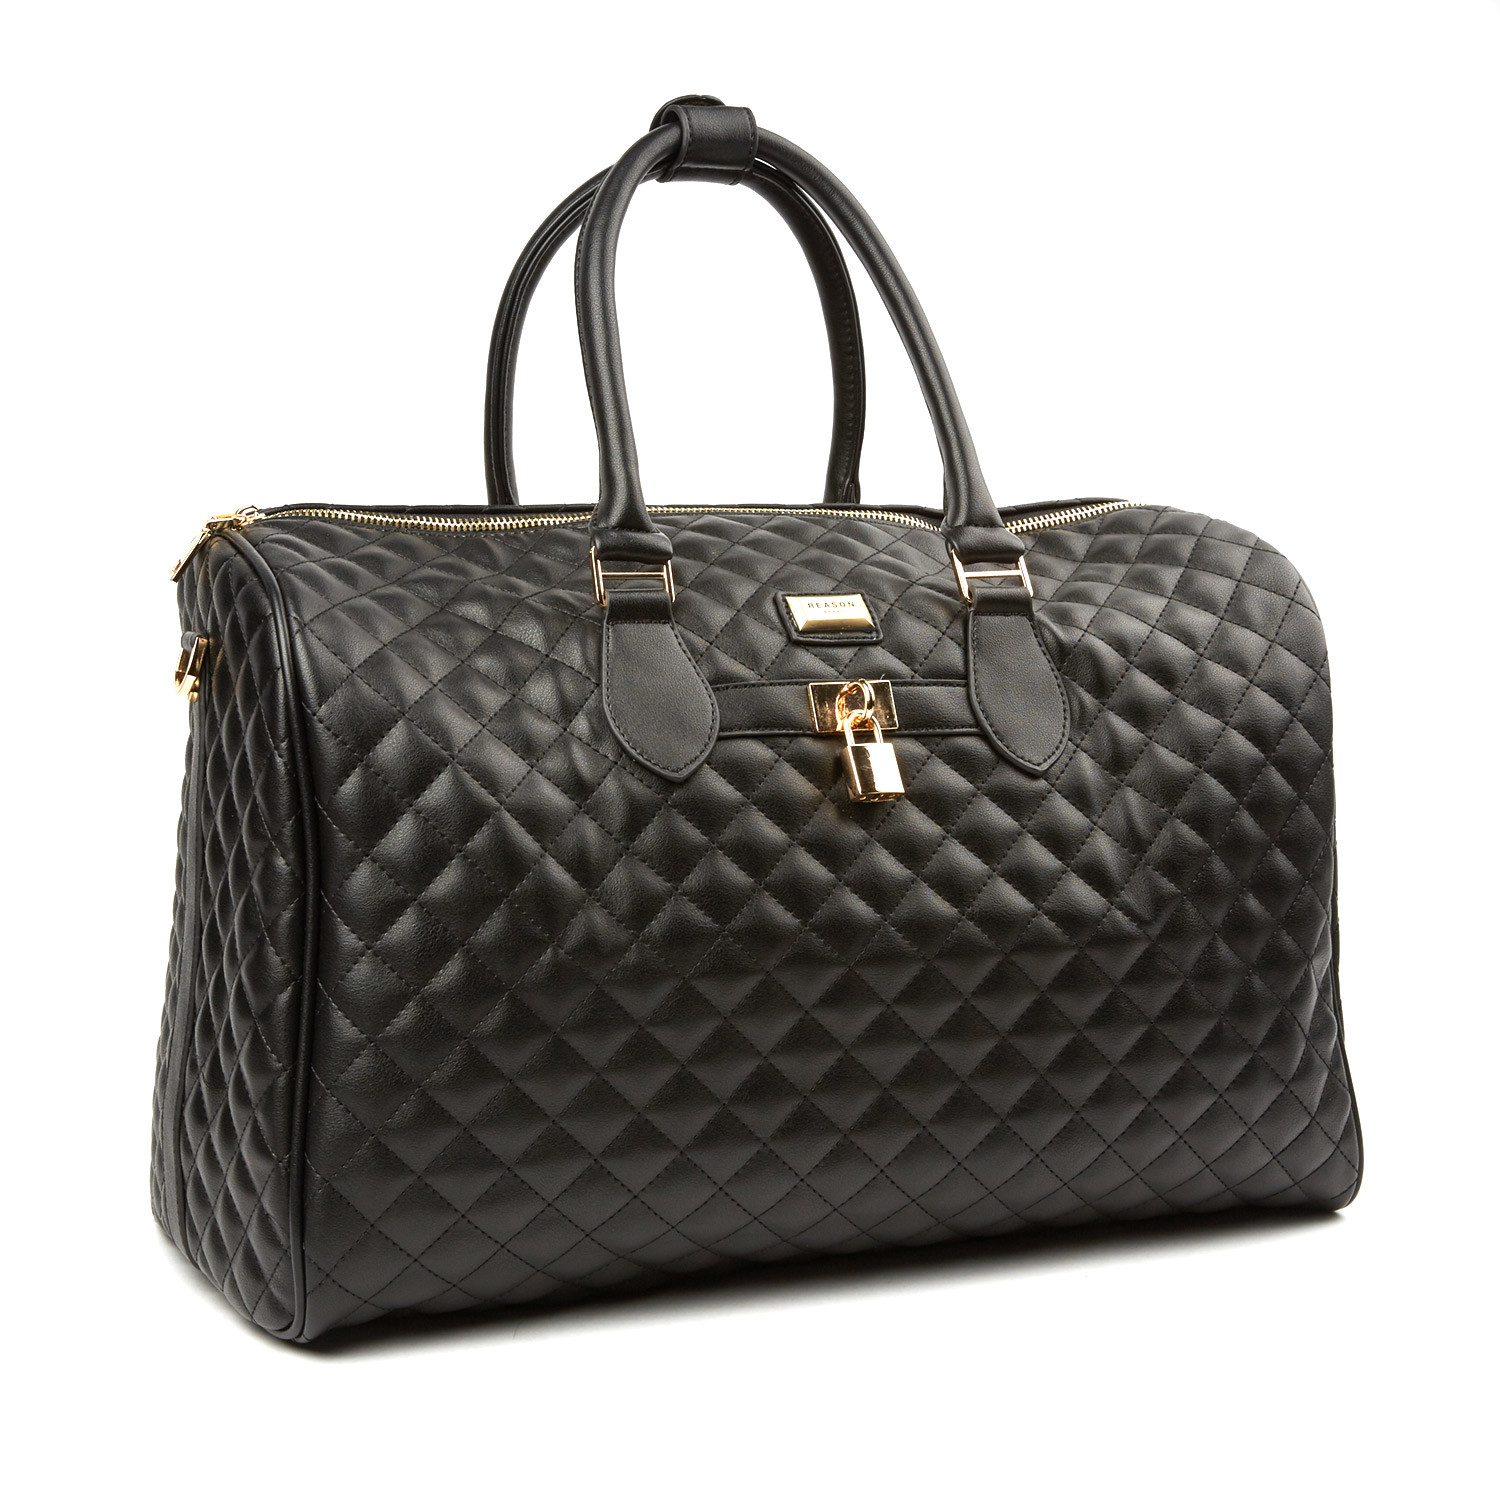 Townline Quilted Duffle Bag // Black - Reason - Touch of Modern : quilted duffle bags - Adamdwight.com